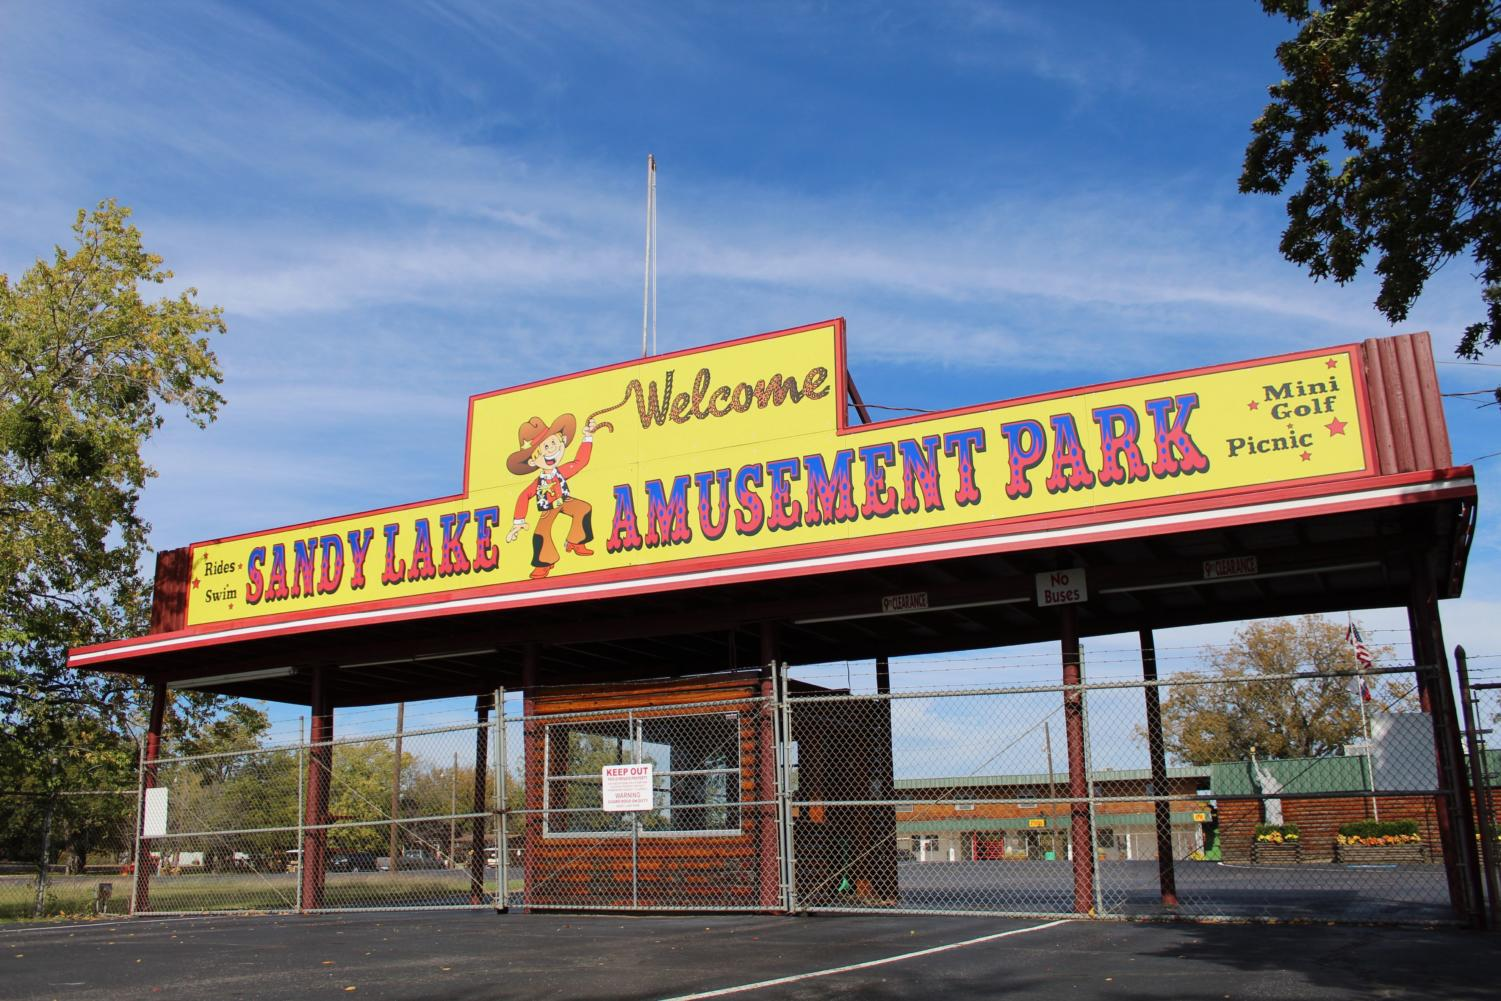 Sandy Lake Amusement Park, the park permanently shut down on Oct. 17, has been special place for families to visit for almost five decades. Most recently, the park was known to many in community for hosting company picnics and field trips.